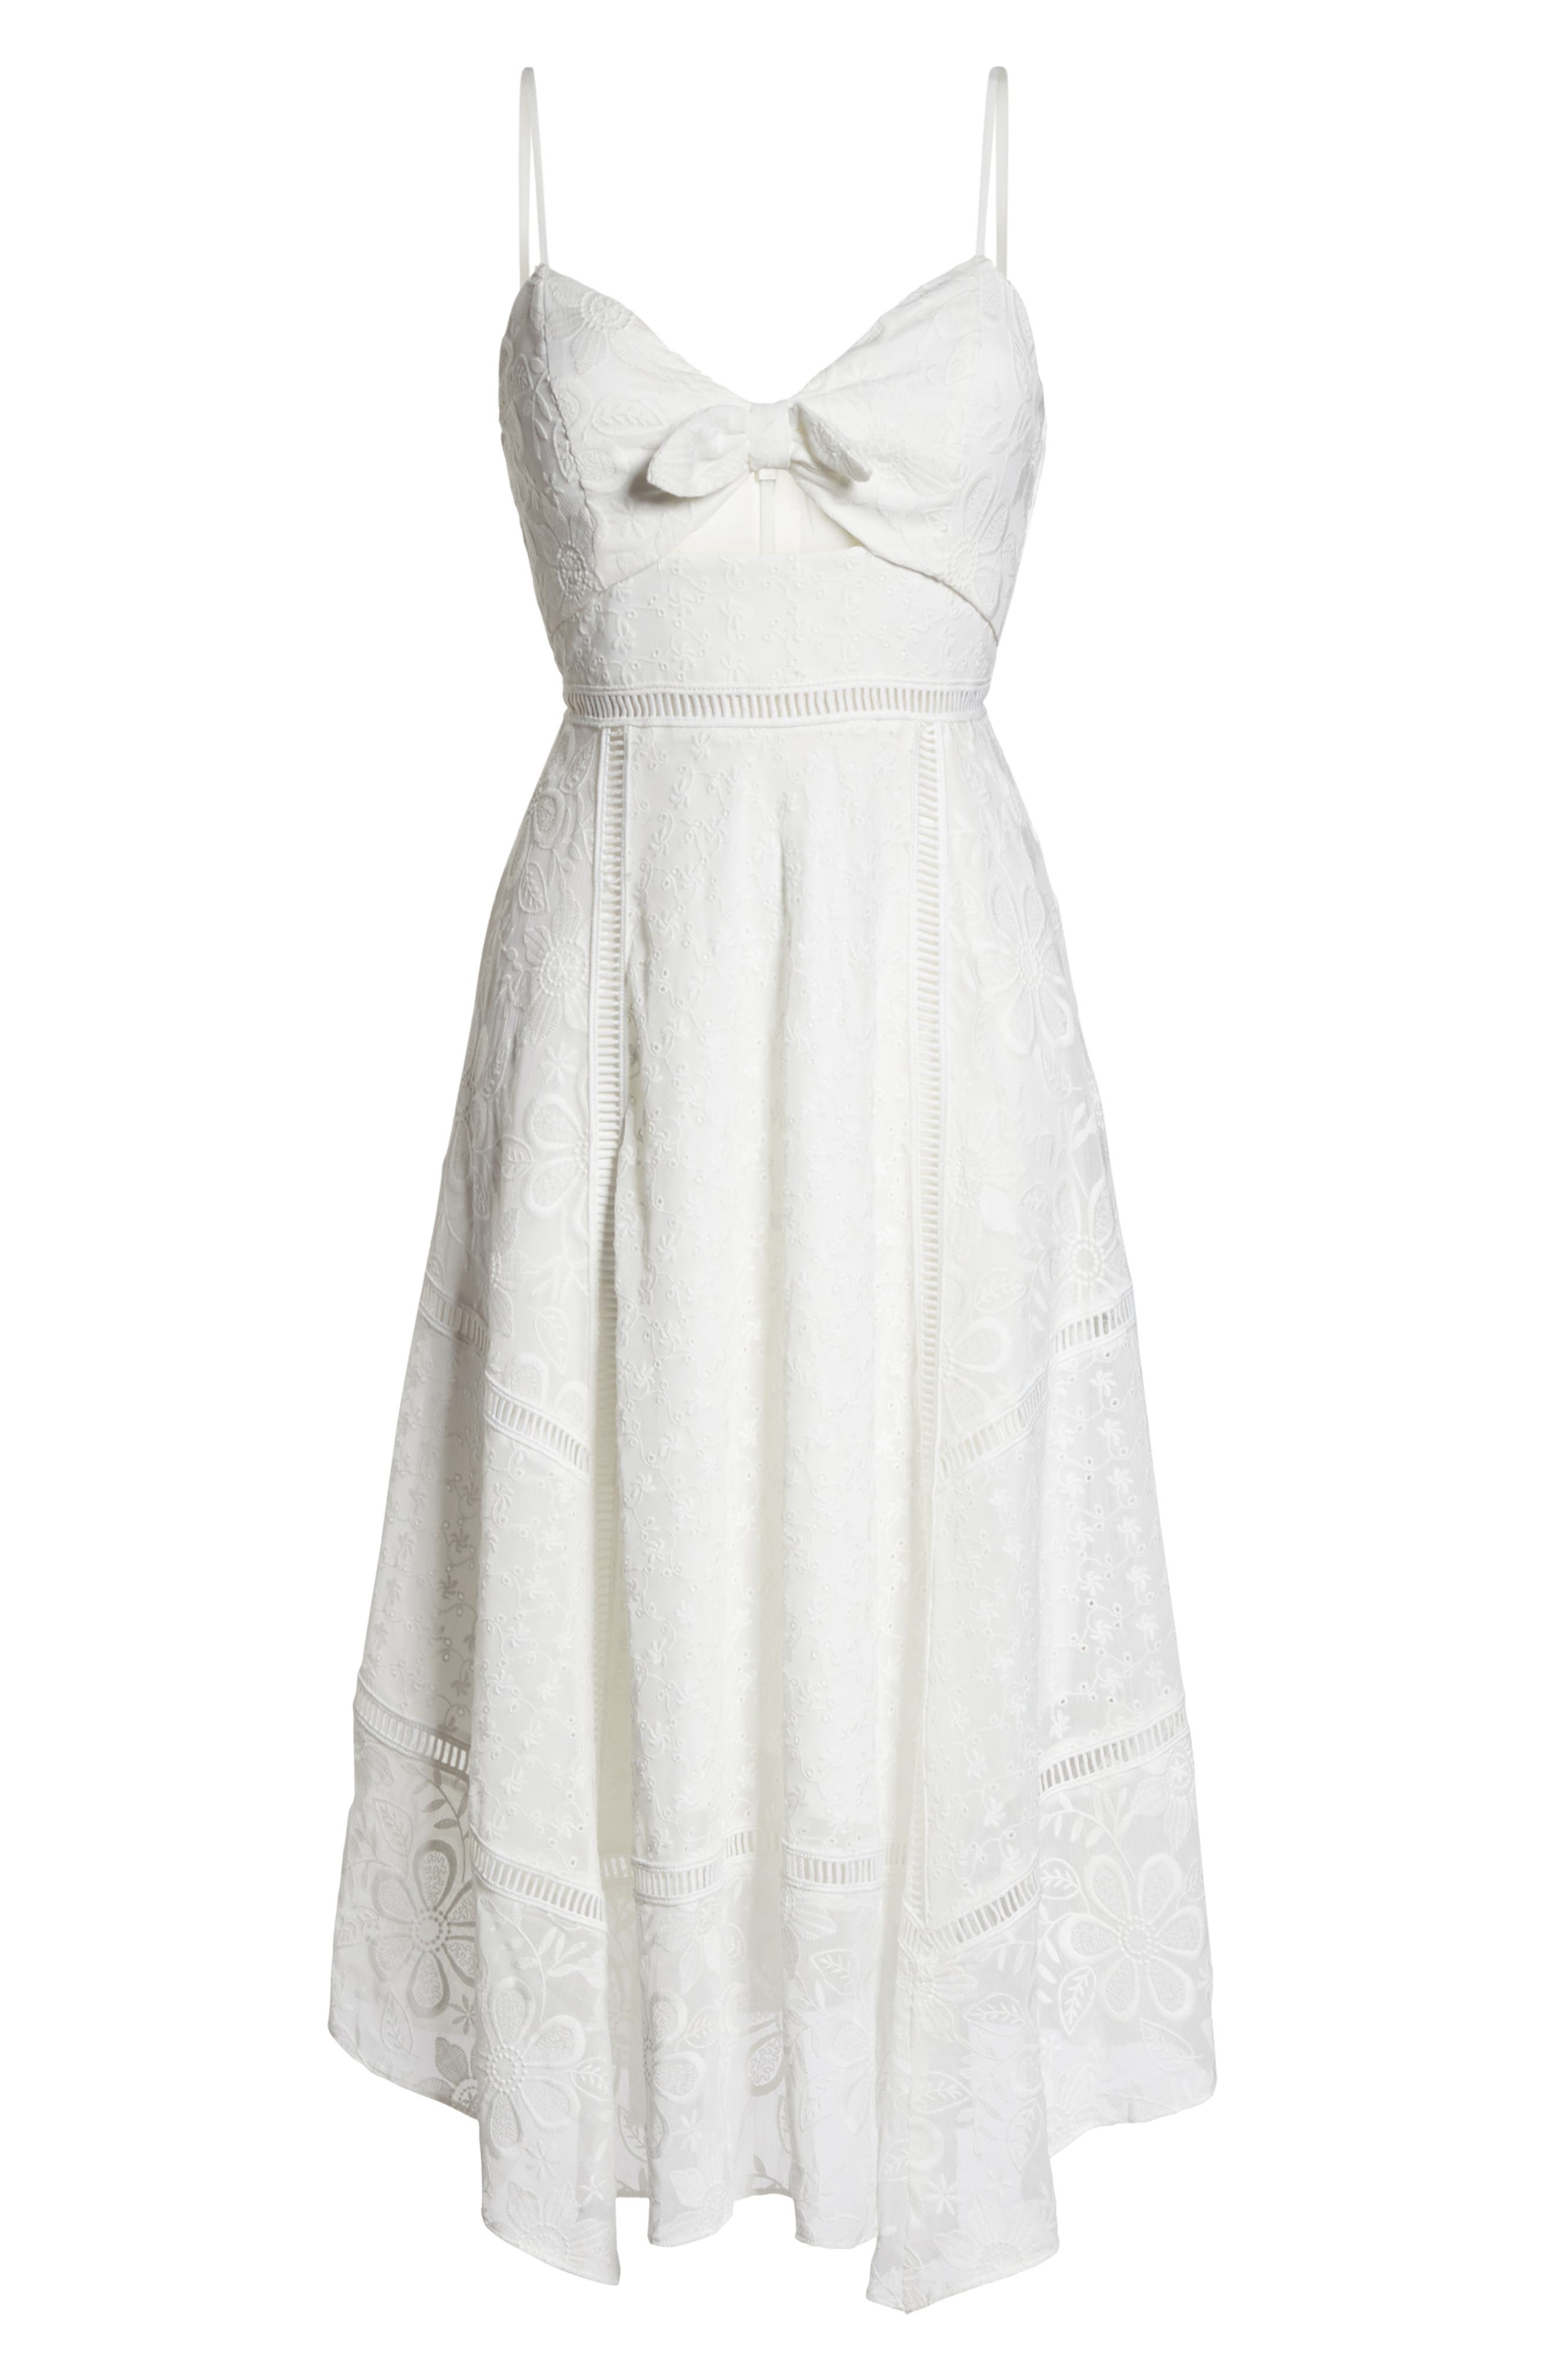 Broderie Anglaise Knot Detail Dress,                             Alternate thumbnail 7, color,                             White